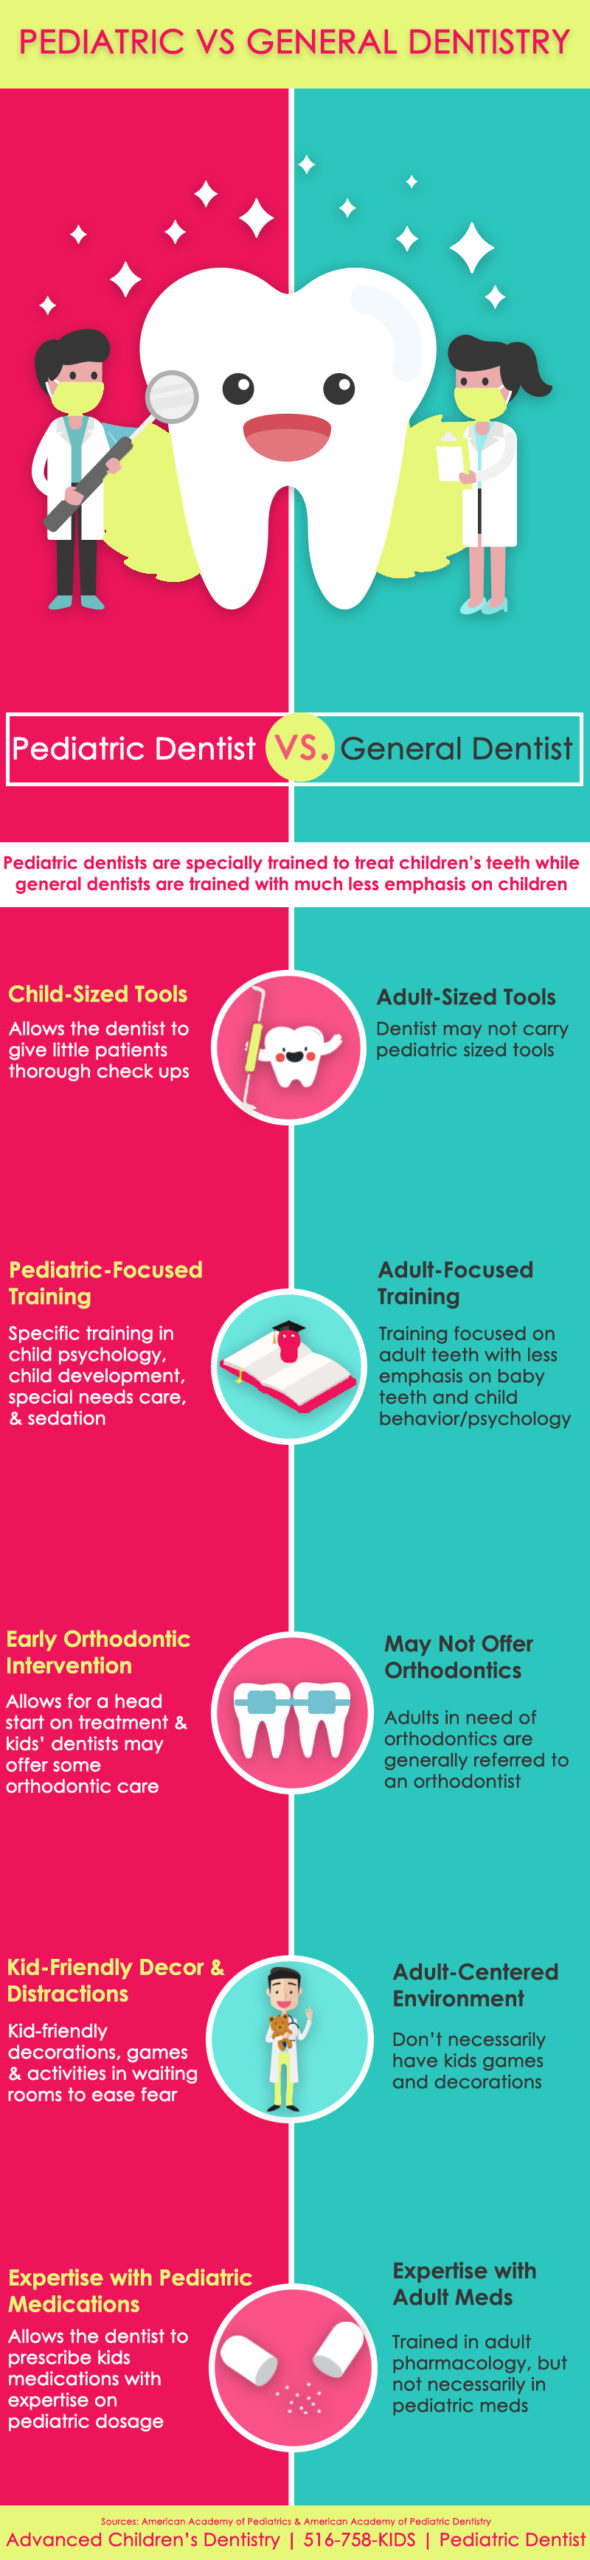 A graphic describing the differences between general dentists and pediatric dentists